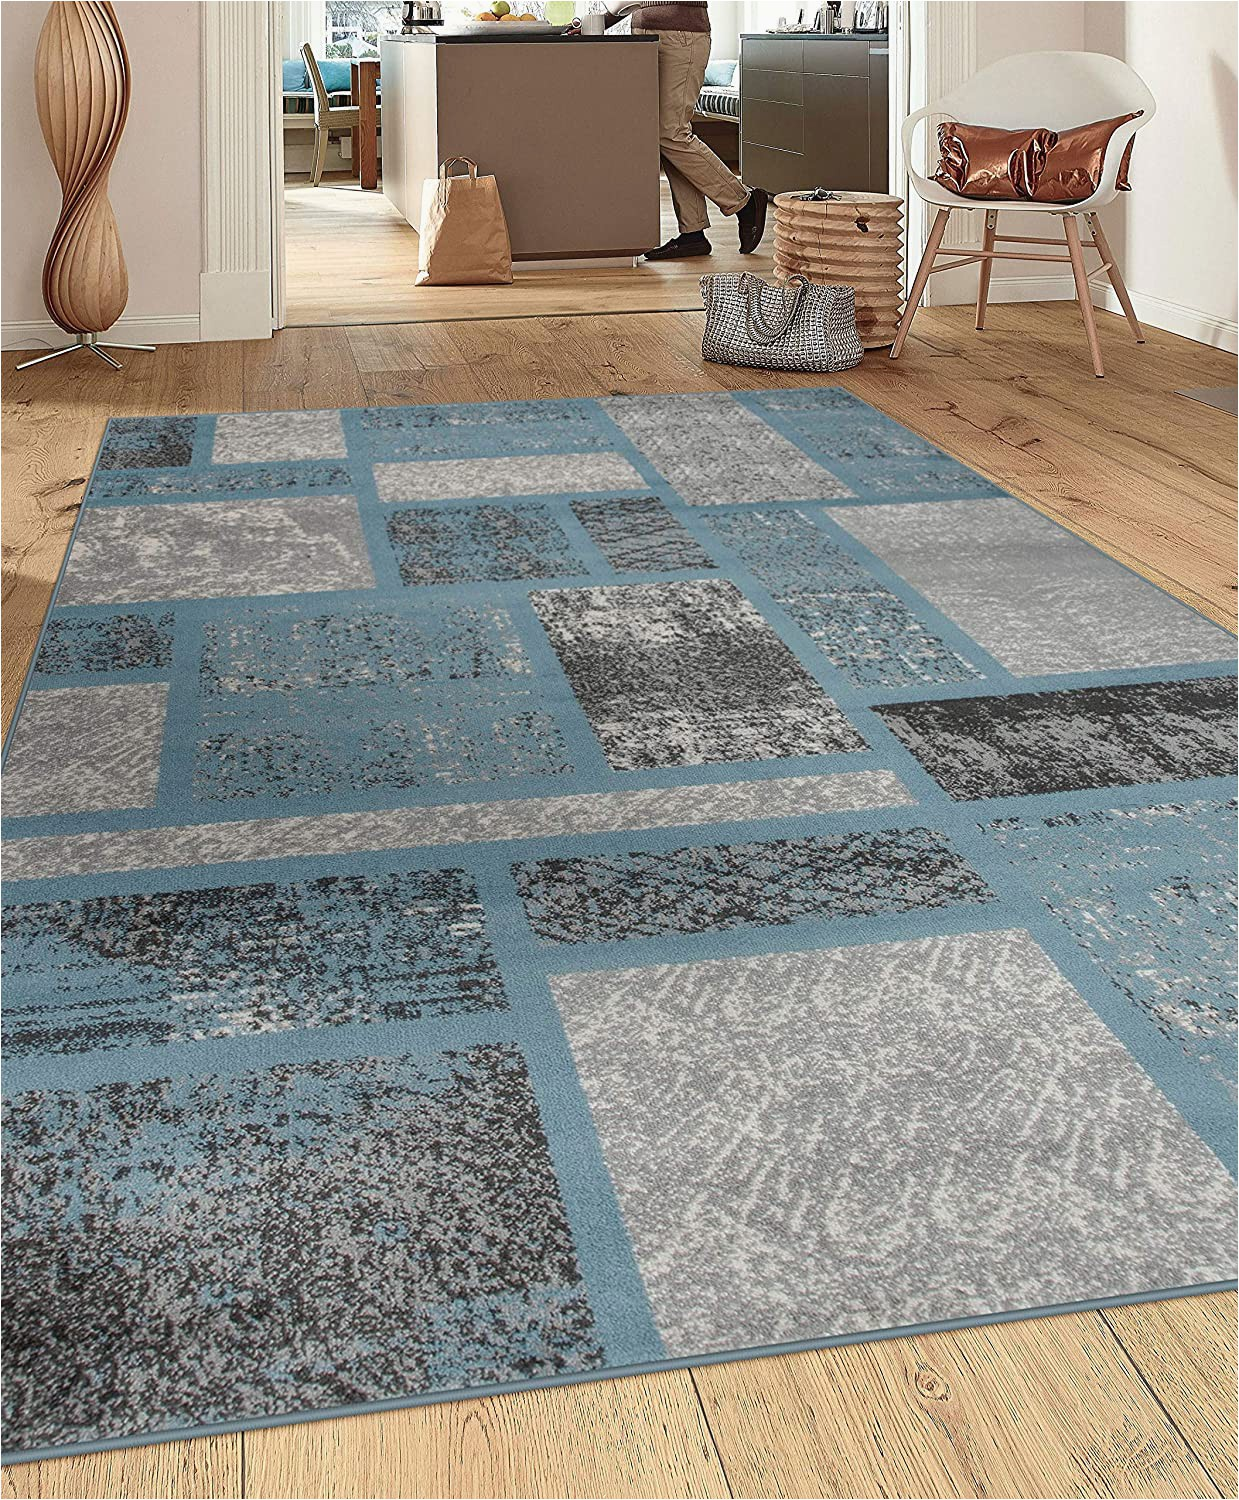 Rugshop Contemporary Modern Boxes area Rug Rugshop Contemporary Modern Boxes Design area Rug 9 X 12 Blue